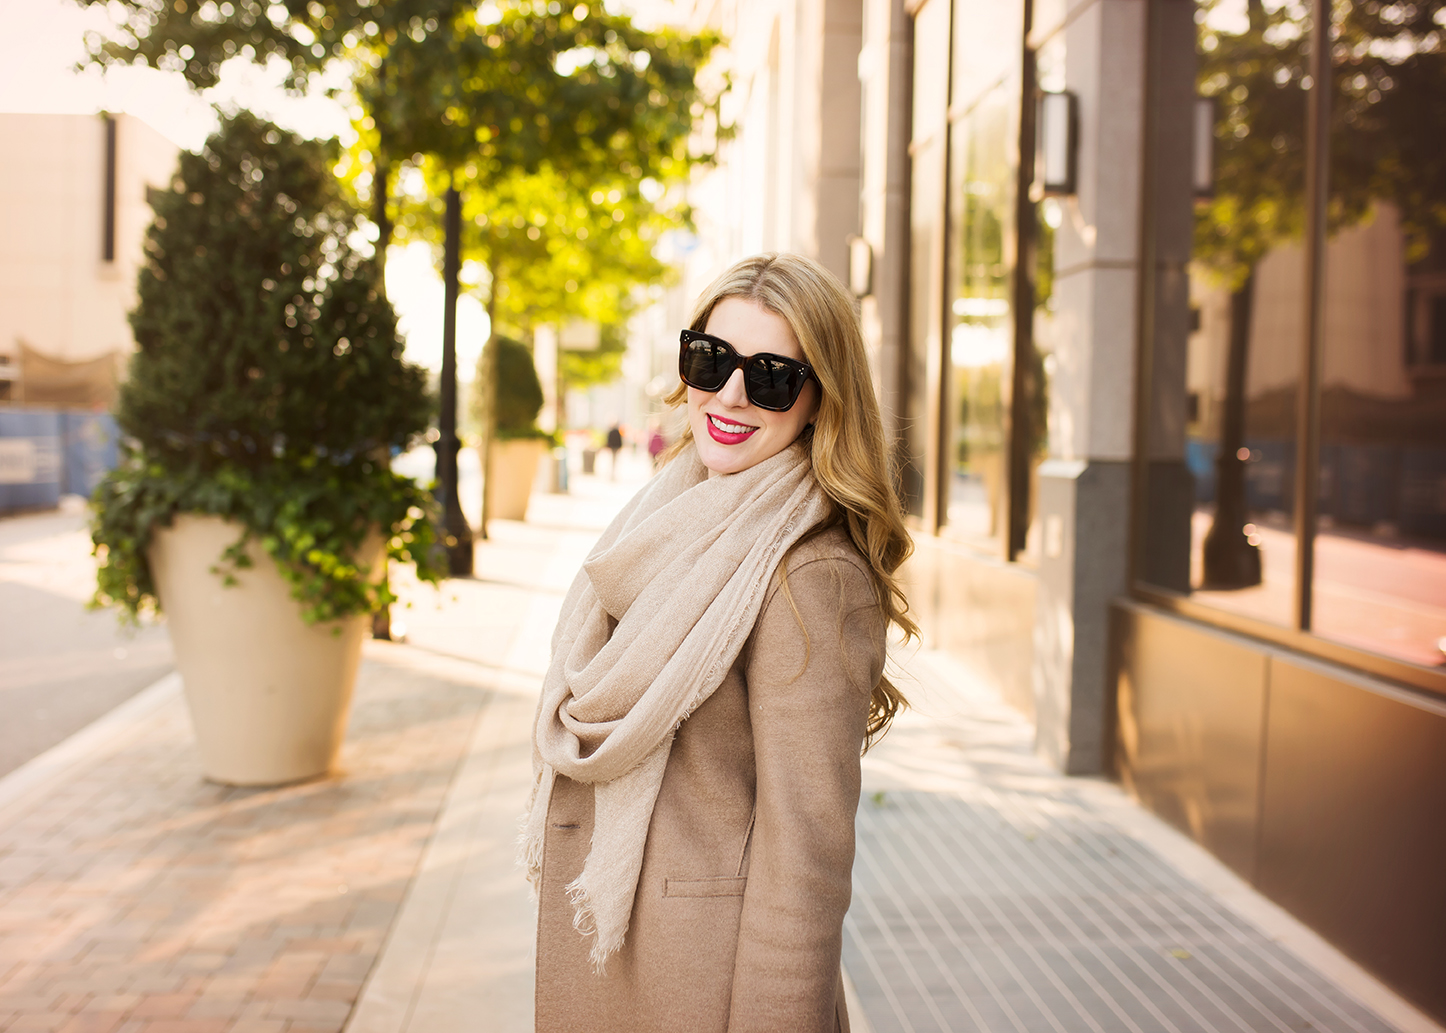 winter-coat-celine-sunglasses